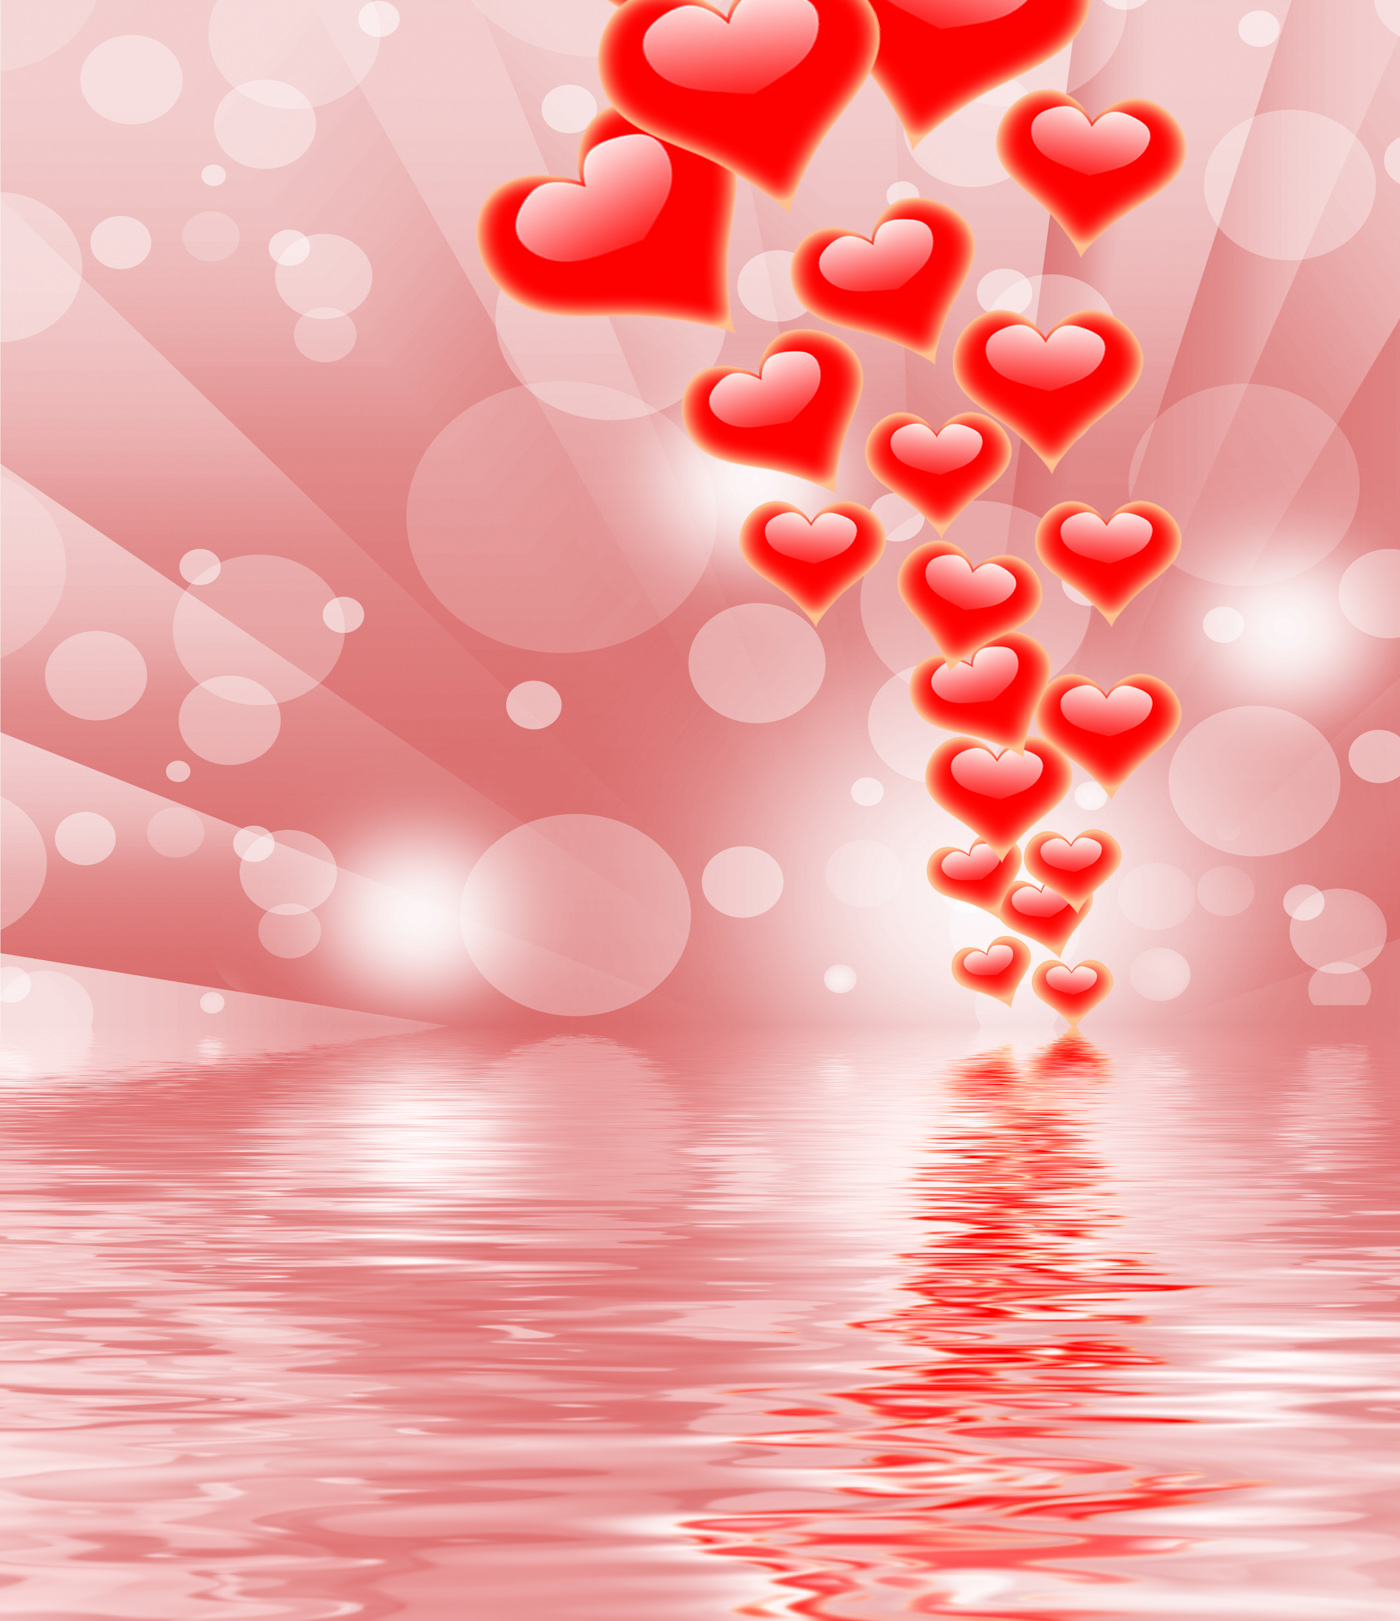 Hearts On Background Displays Valentines Day Or Romanticism, Cheerful, Valentine, Romanticism, Romantic, HQ Photo